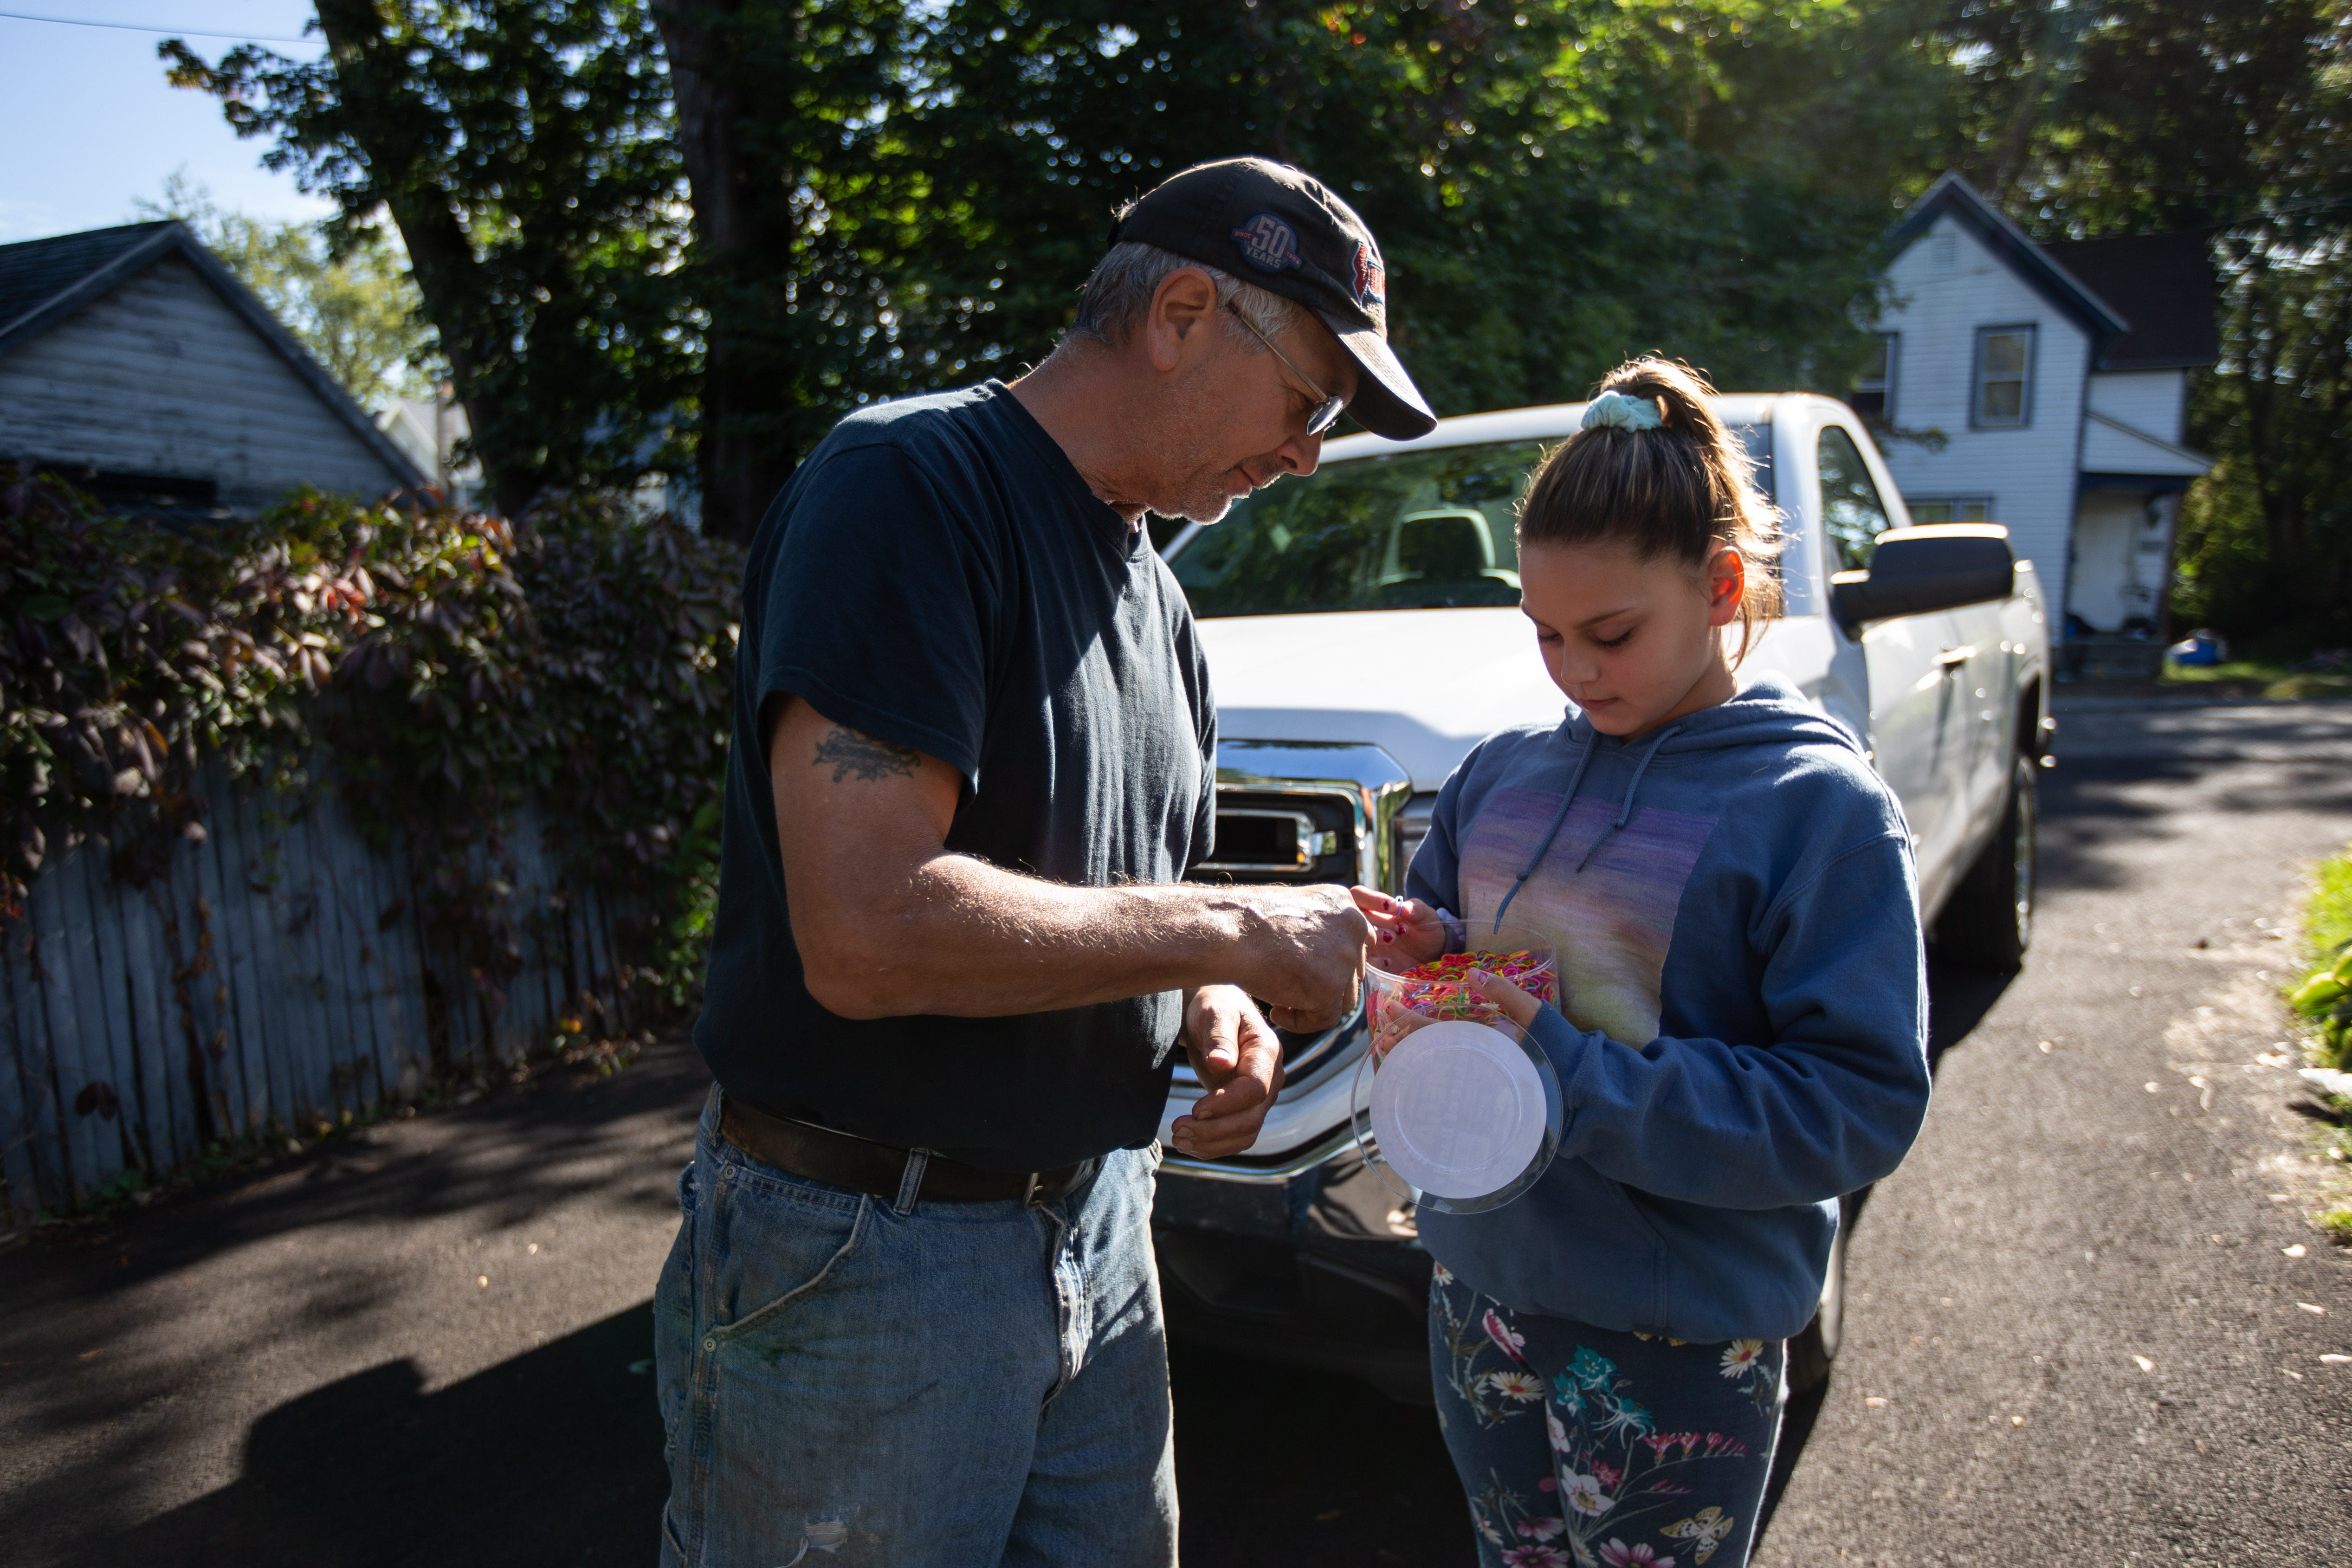 Aubrey Steenburg, 11, asks her grandfather Dutch Andrews to pick out colors he'd like for a rubber band bracelet. Aubrey was home sick from school on Monday, Sept. 16, 2018 and spent the day with her grandfather. Rich Steenburg, Aubrey's father, was one of 20 people killed in the Schoharie limousine crash on Oct. 6, 2018.